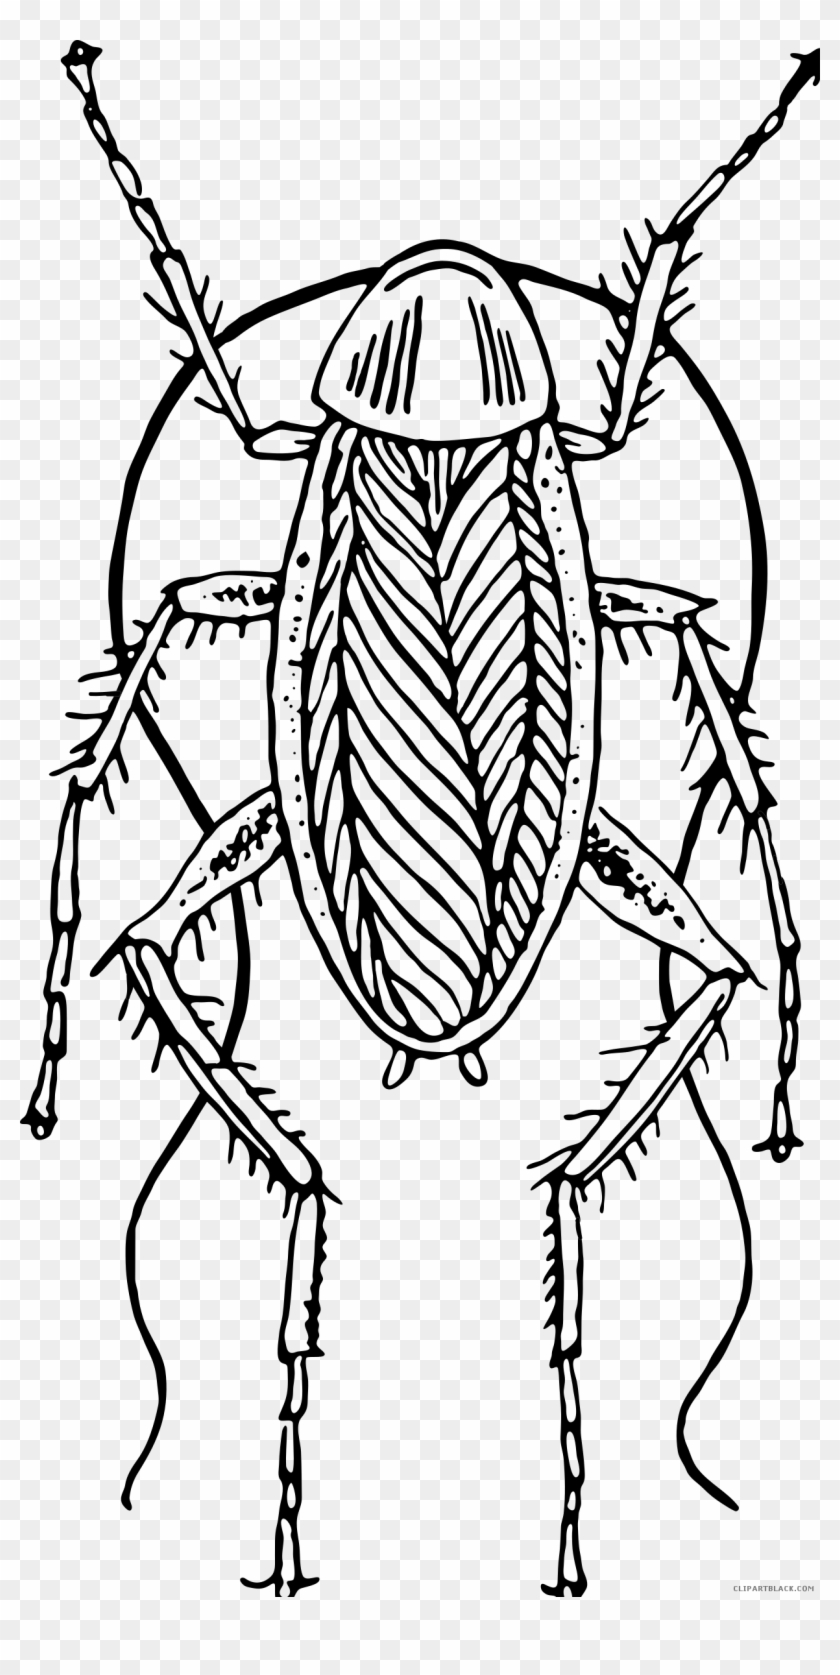 Cockroach Black And White - Cockroach Clipart Black And White - Png Download@pikpng.com